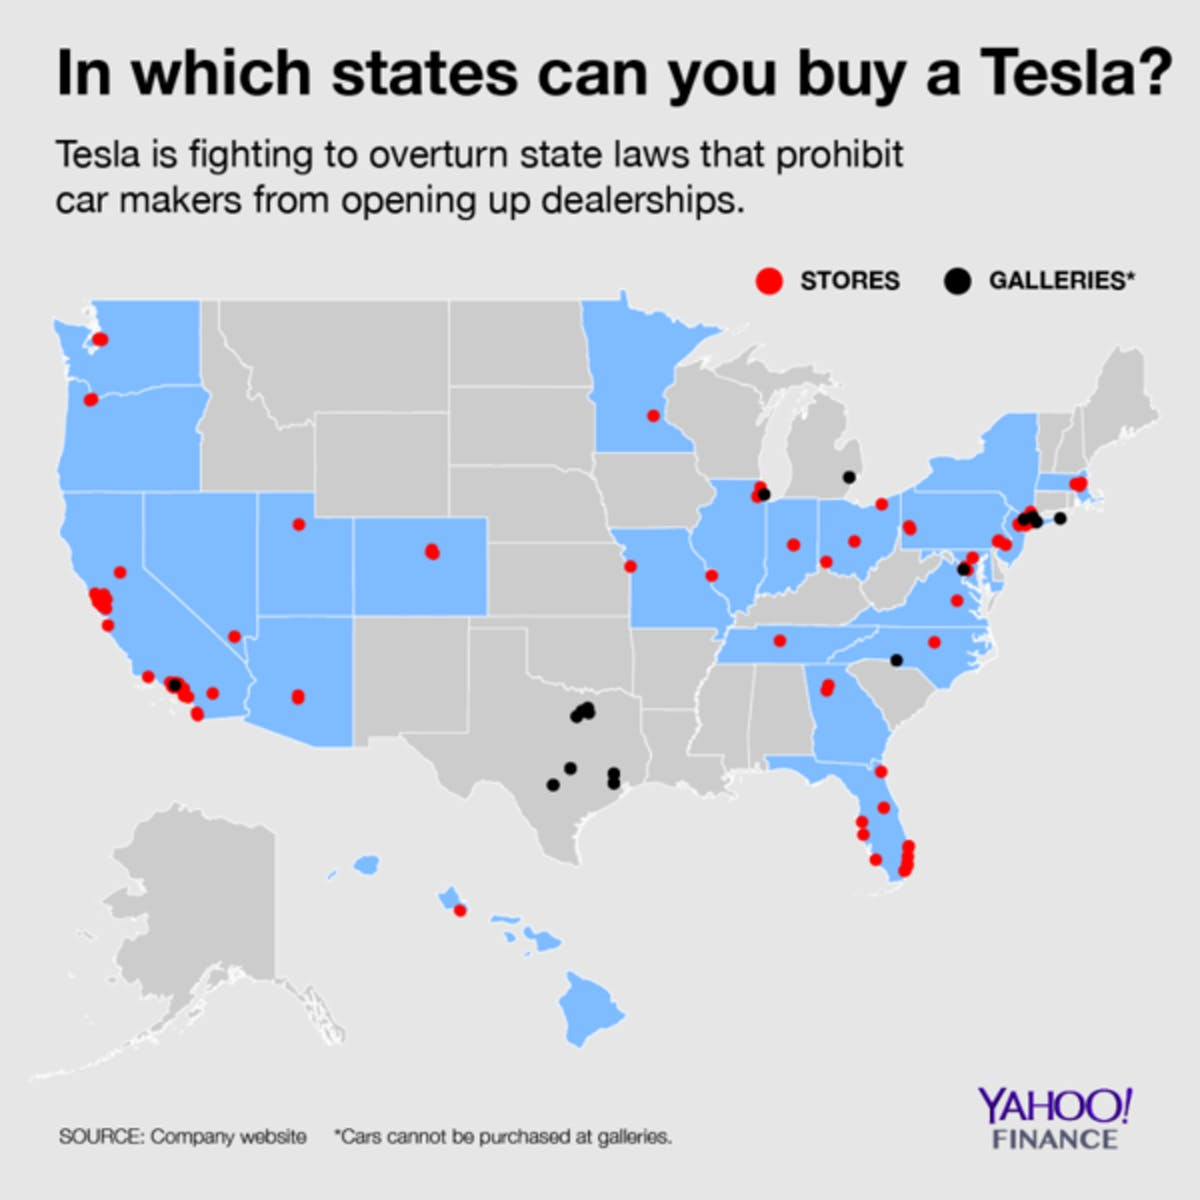 only states where you can buy a tesla